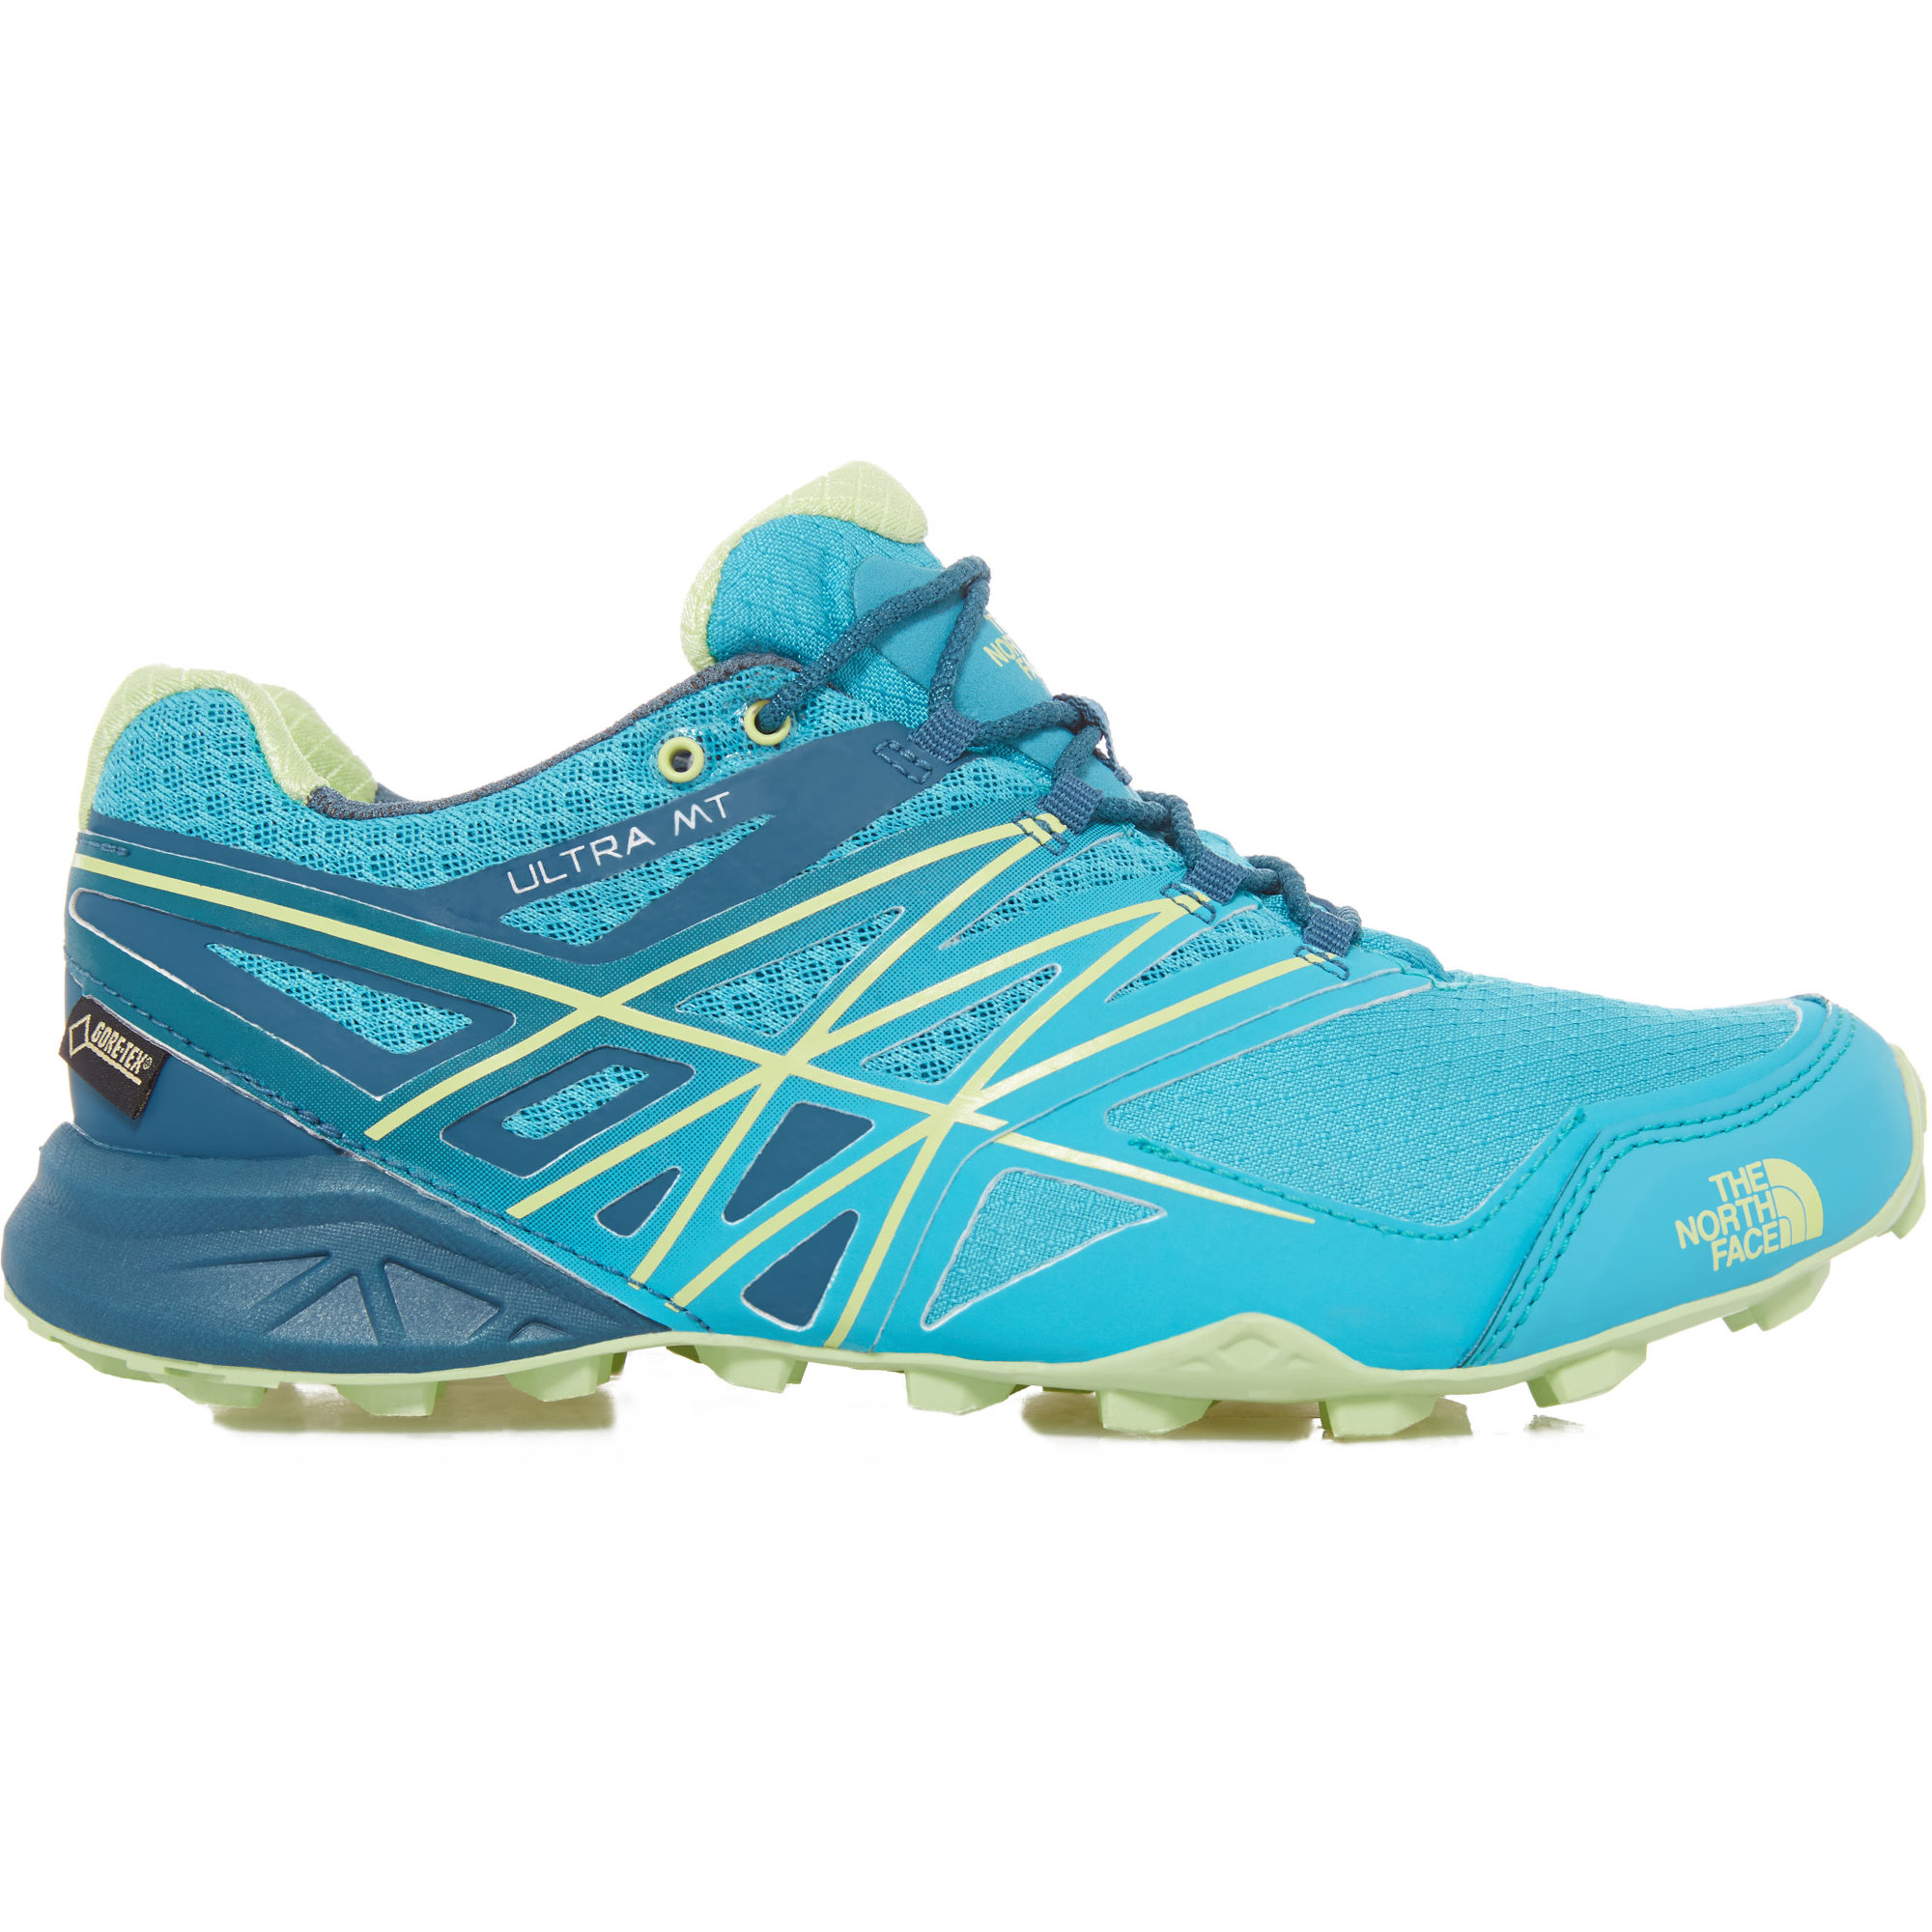 The North Face Ultra  Gtx Trail Running Shoes Women S